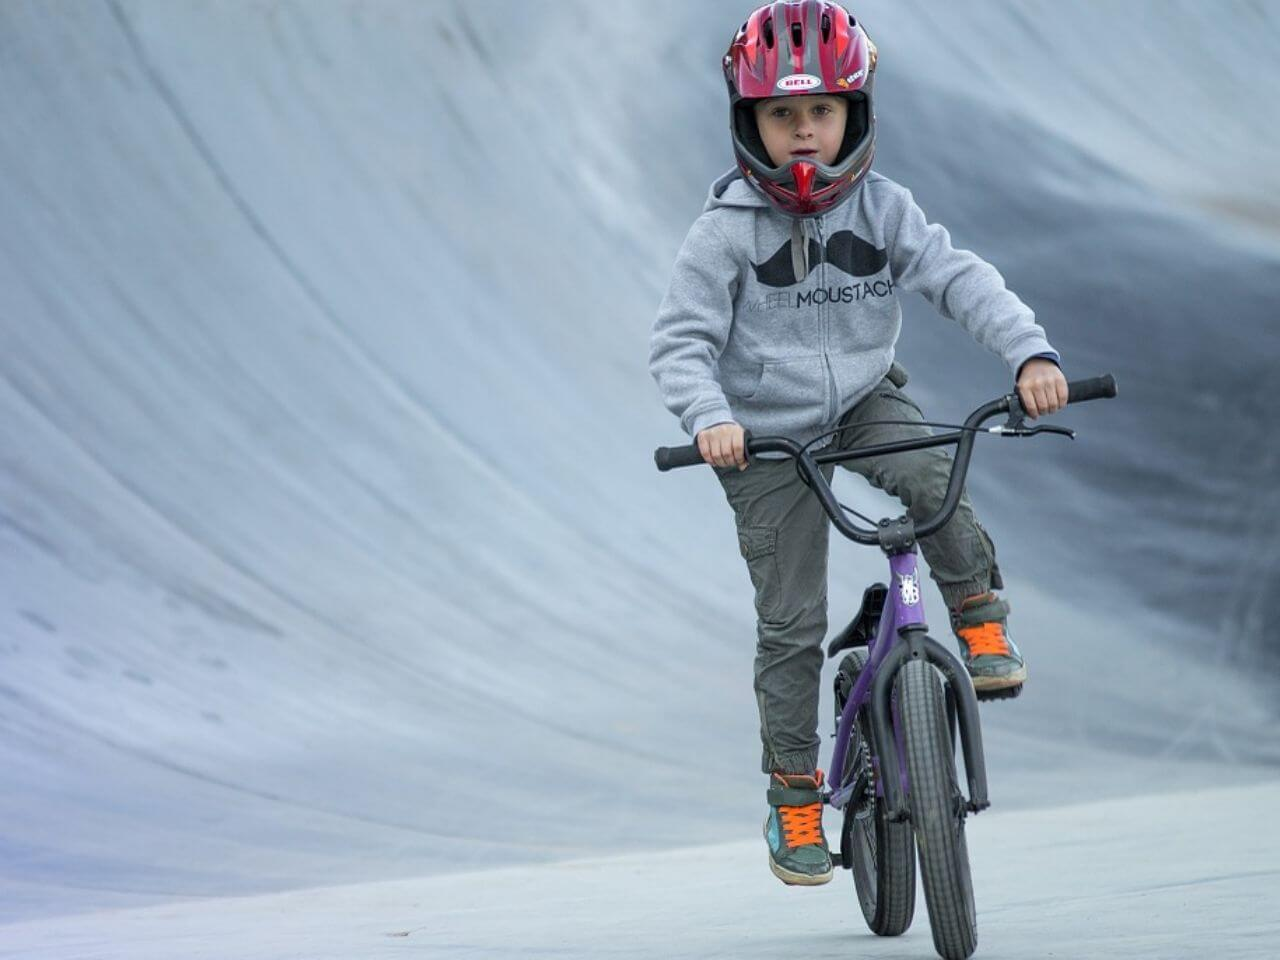 Child on bmx bike